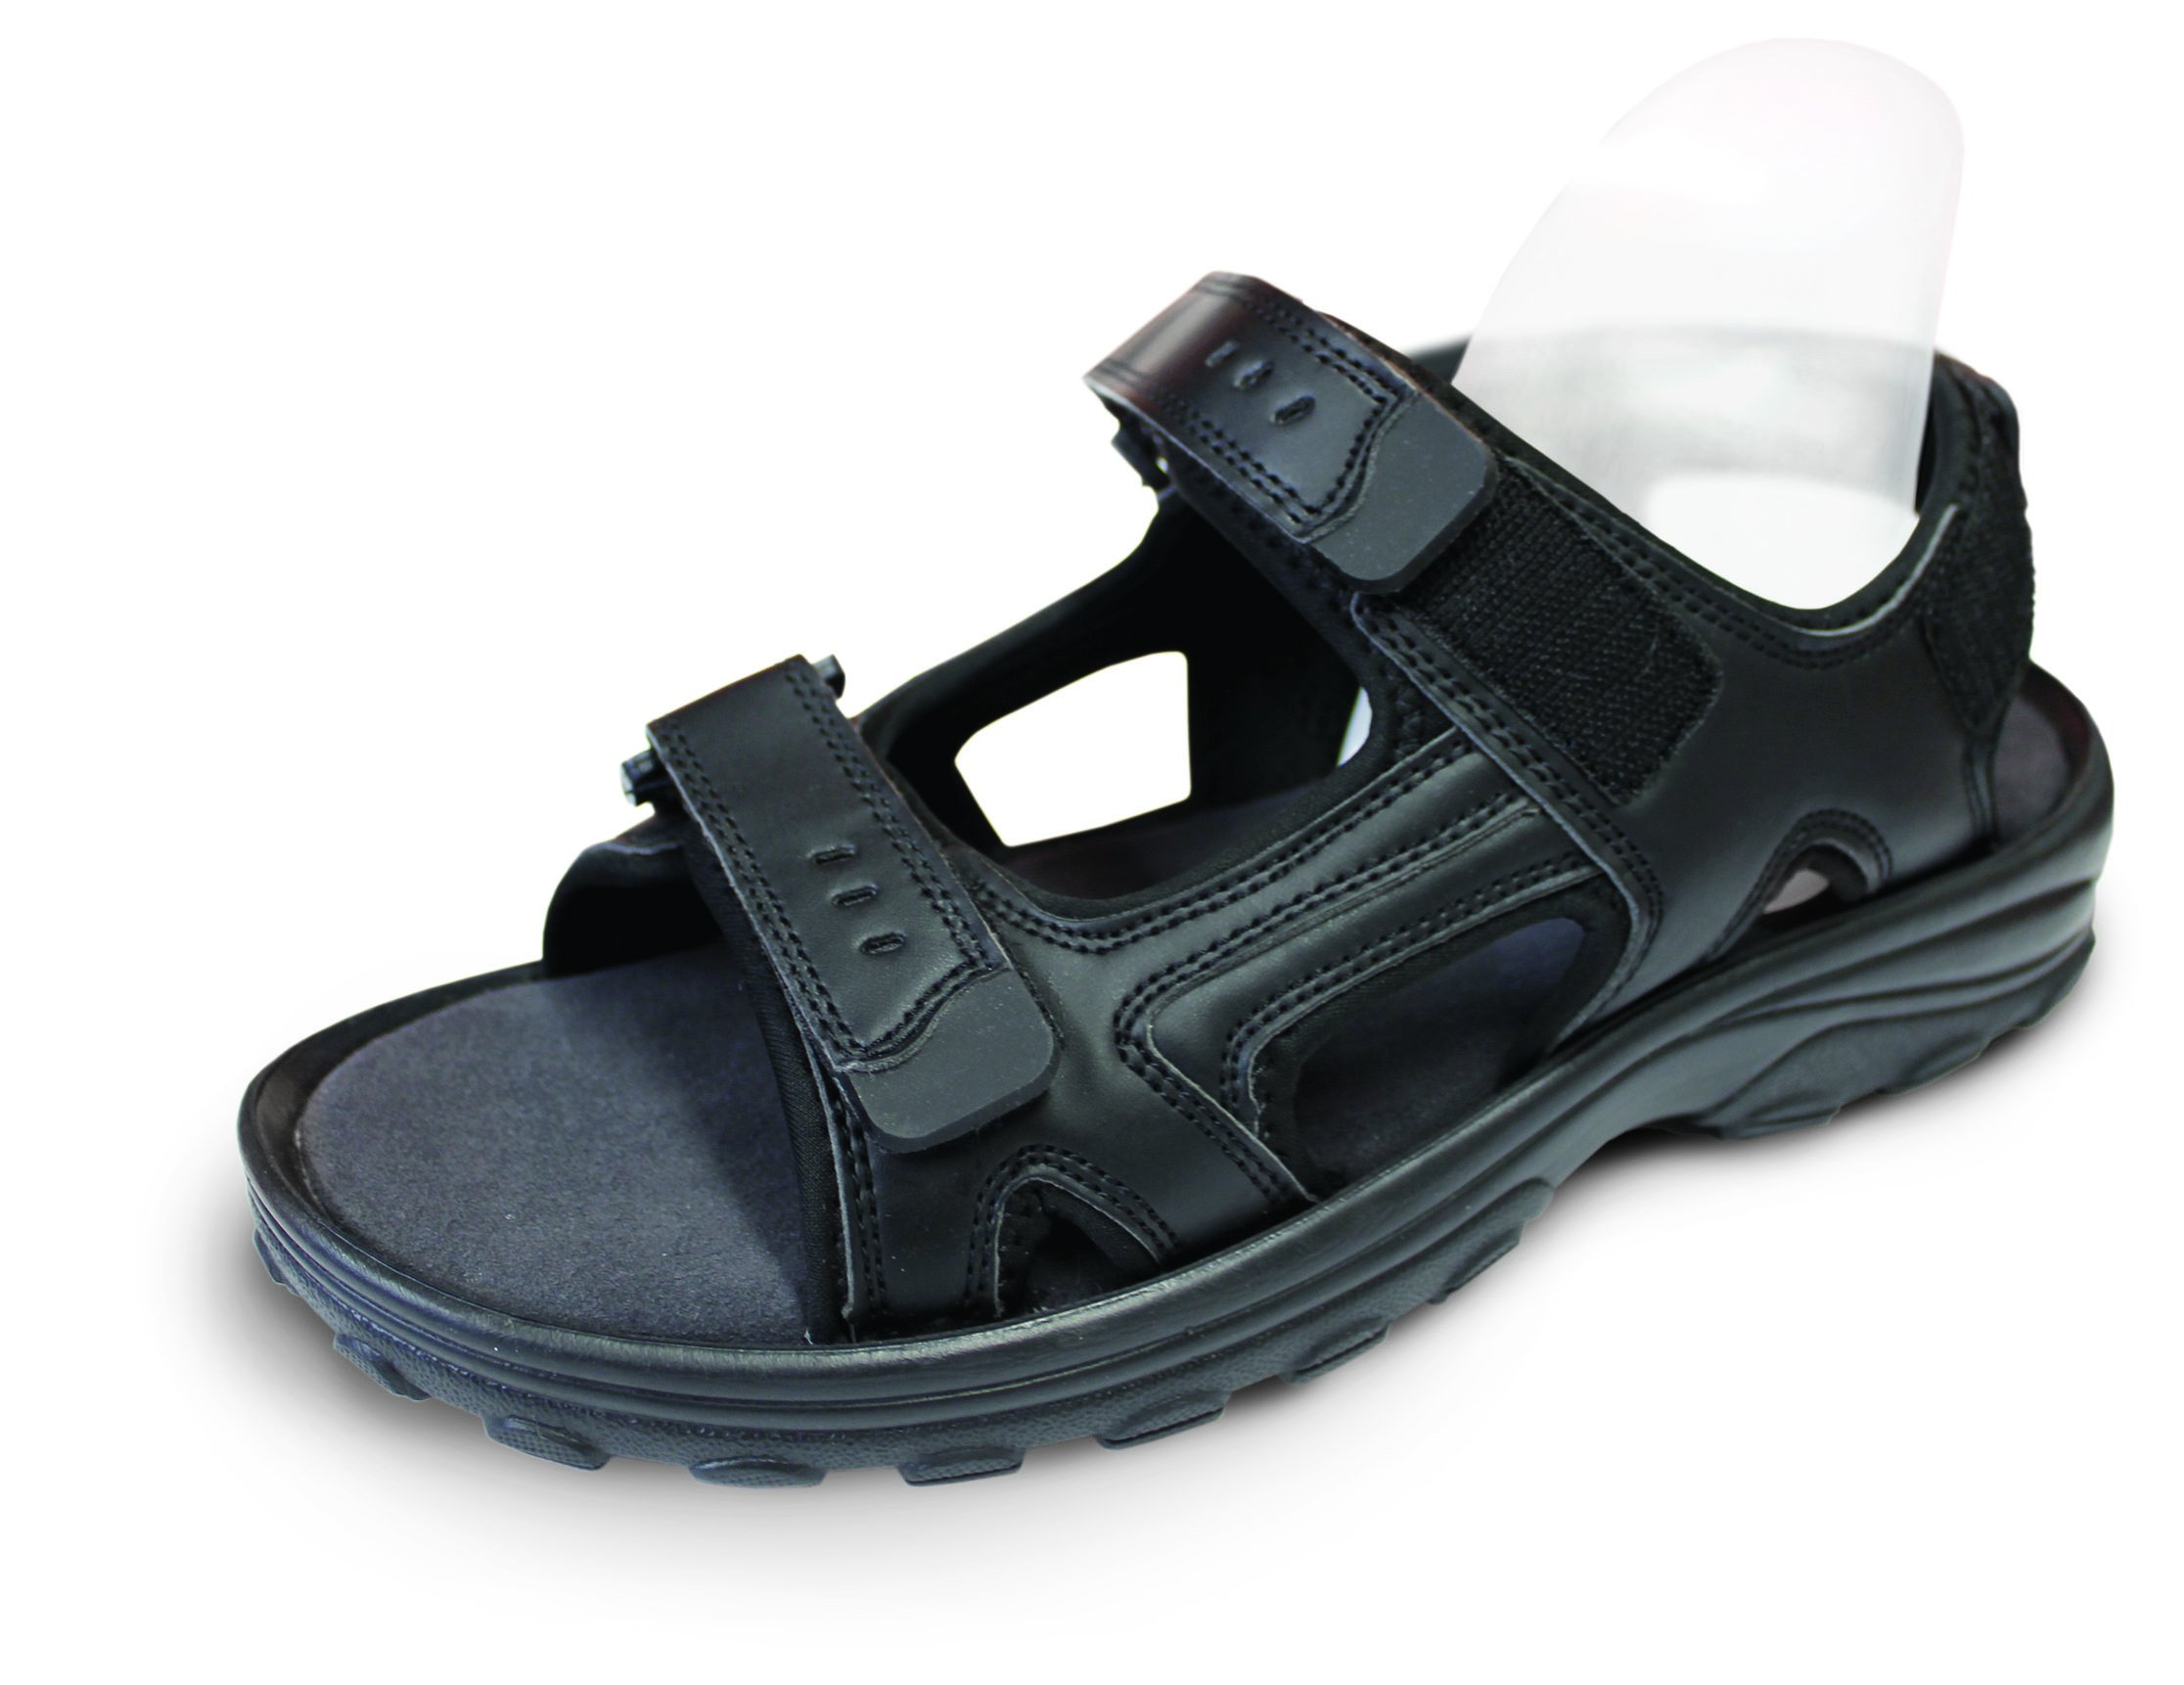 Travel Feet Power Lift Full Length Insole Pad & Arch Support Orthotic Attached w/Bonus Jandalmate (5M11.5)